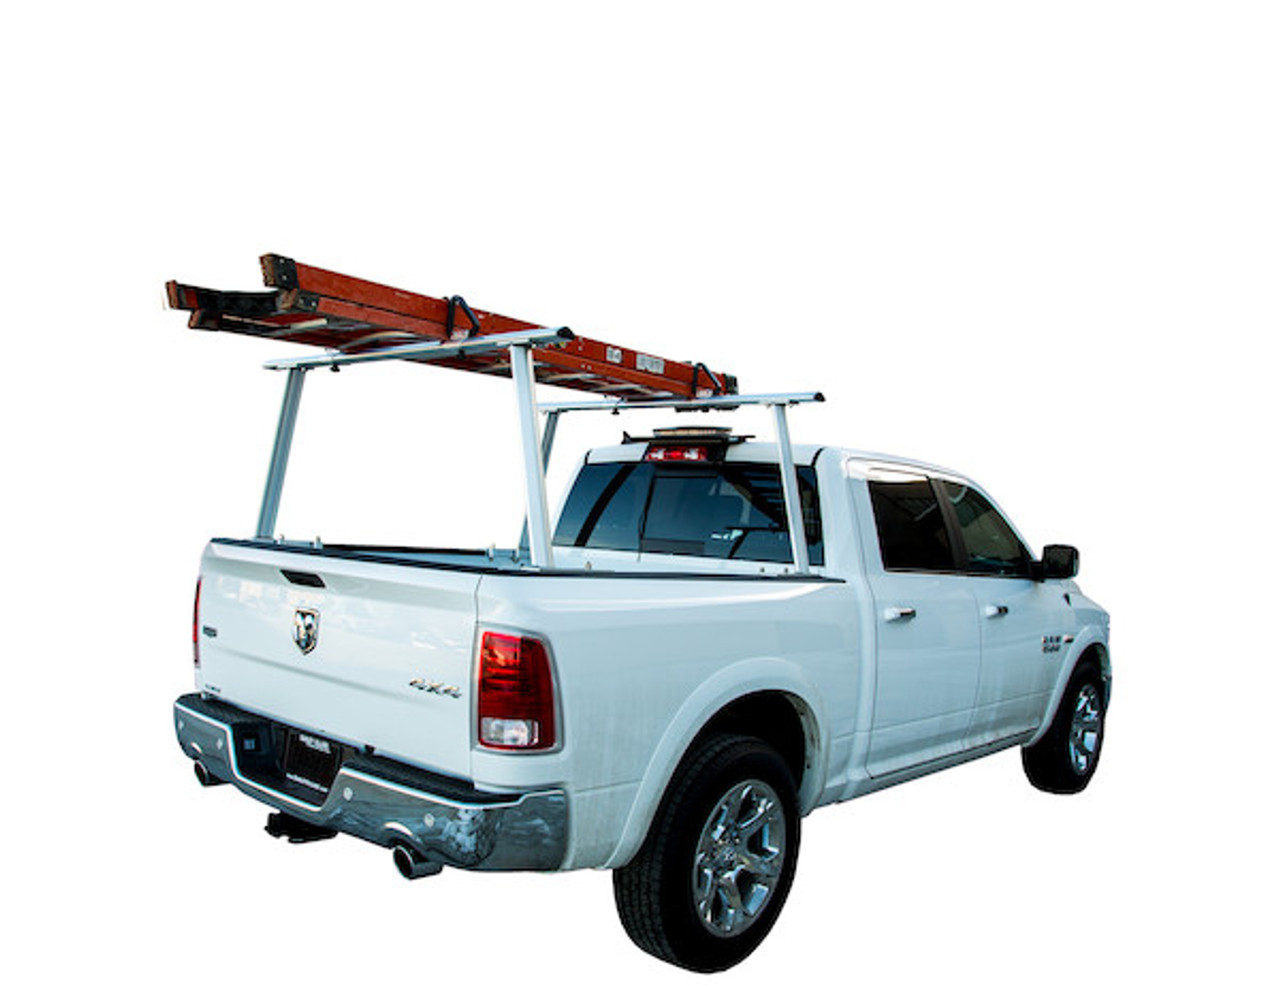 BUYERS 1501675 Aluminum Truck Rack for Contractors, Construction, Electricians Picture # 3